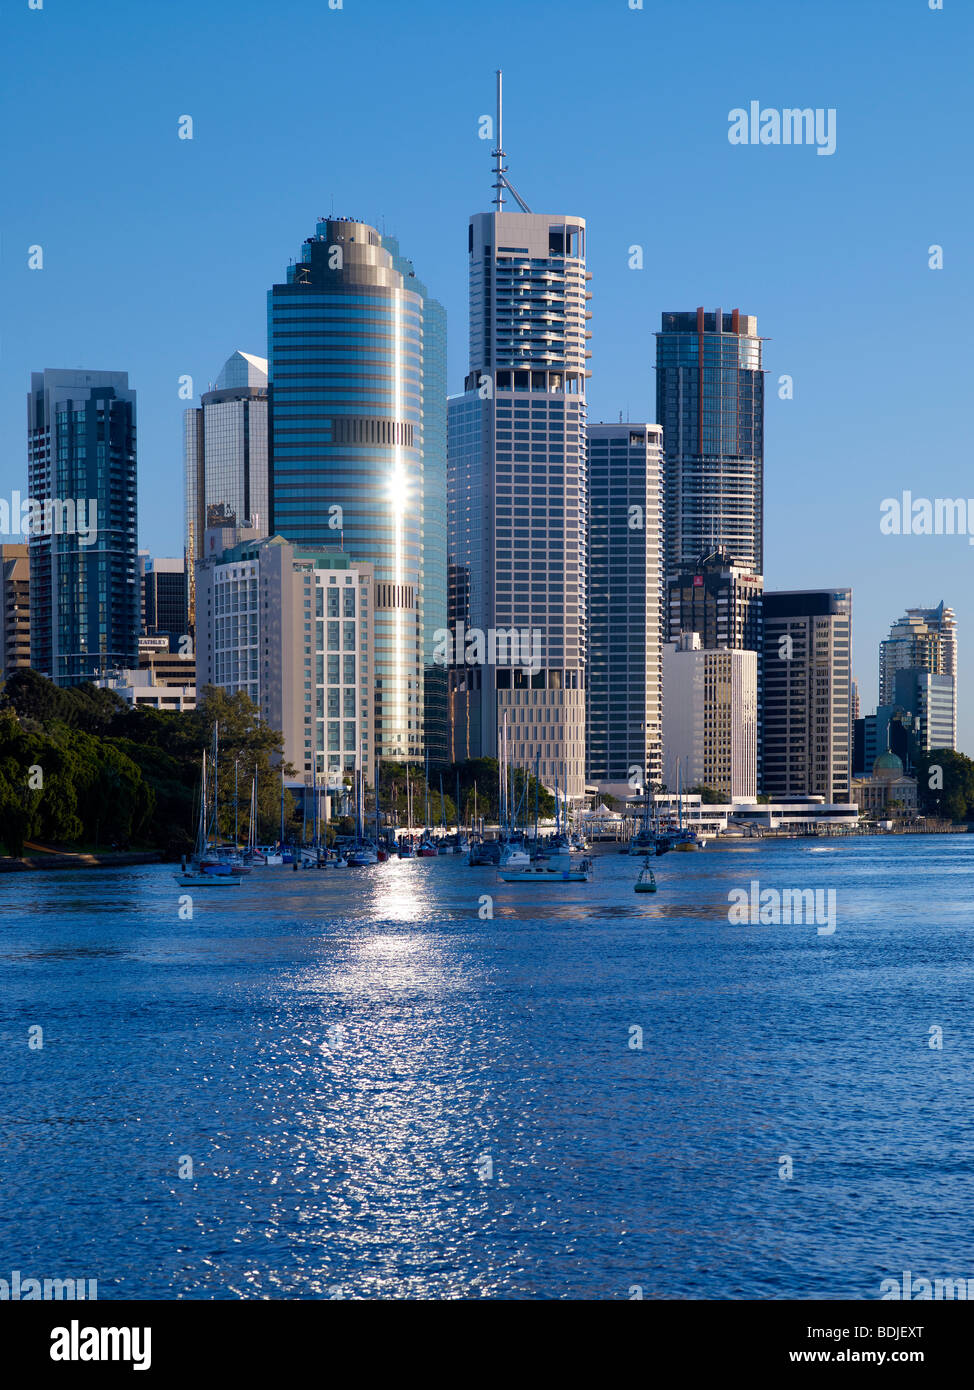 Brisbane City Australia - Stock Image